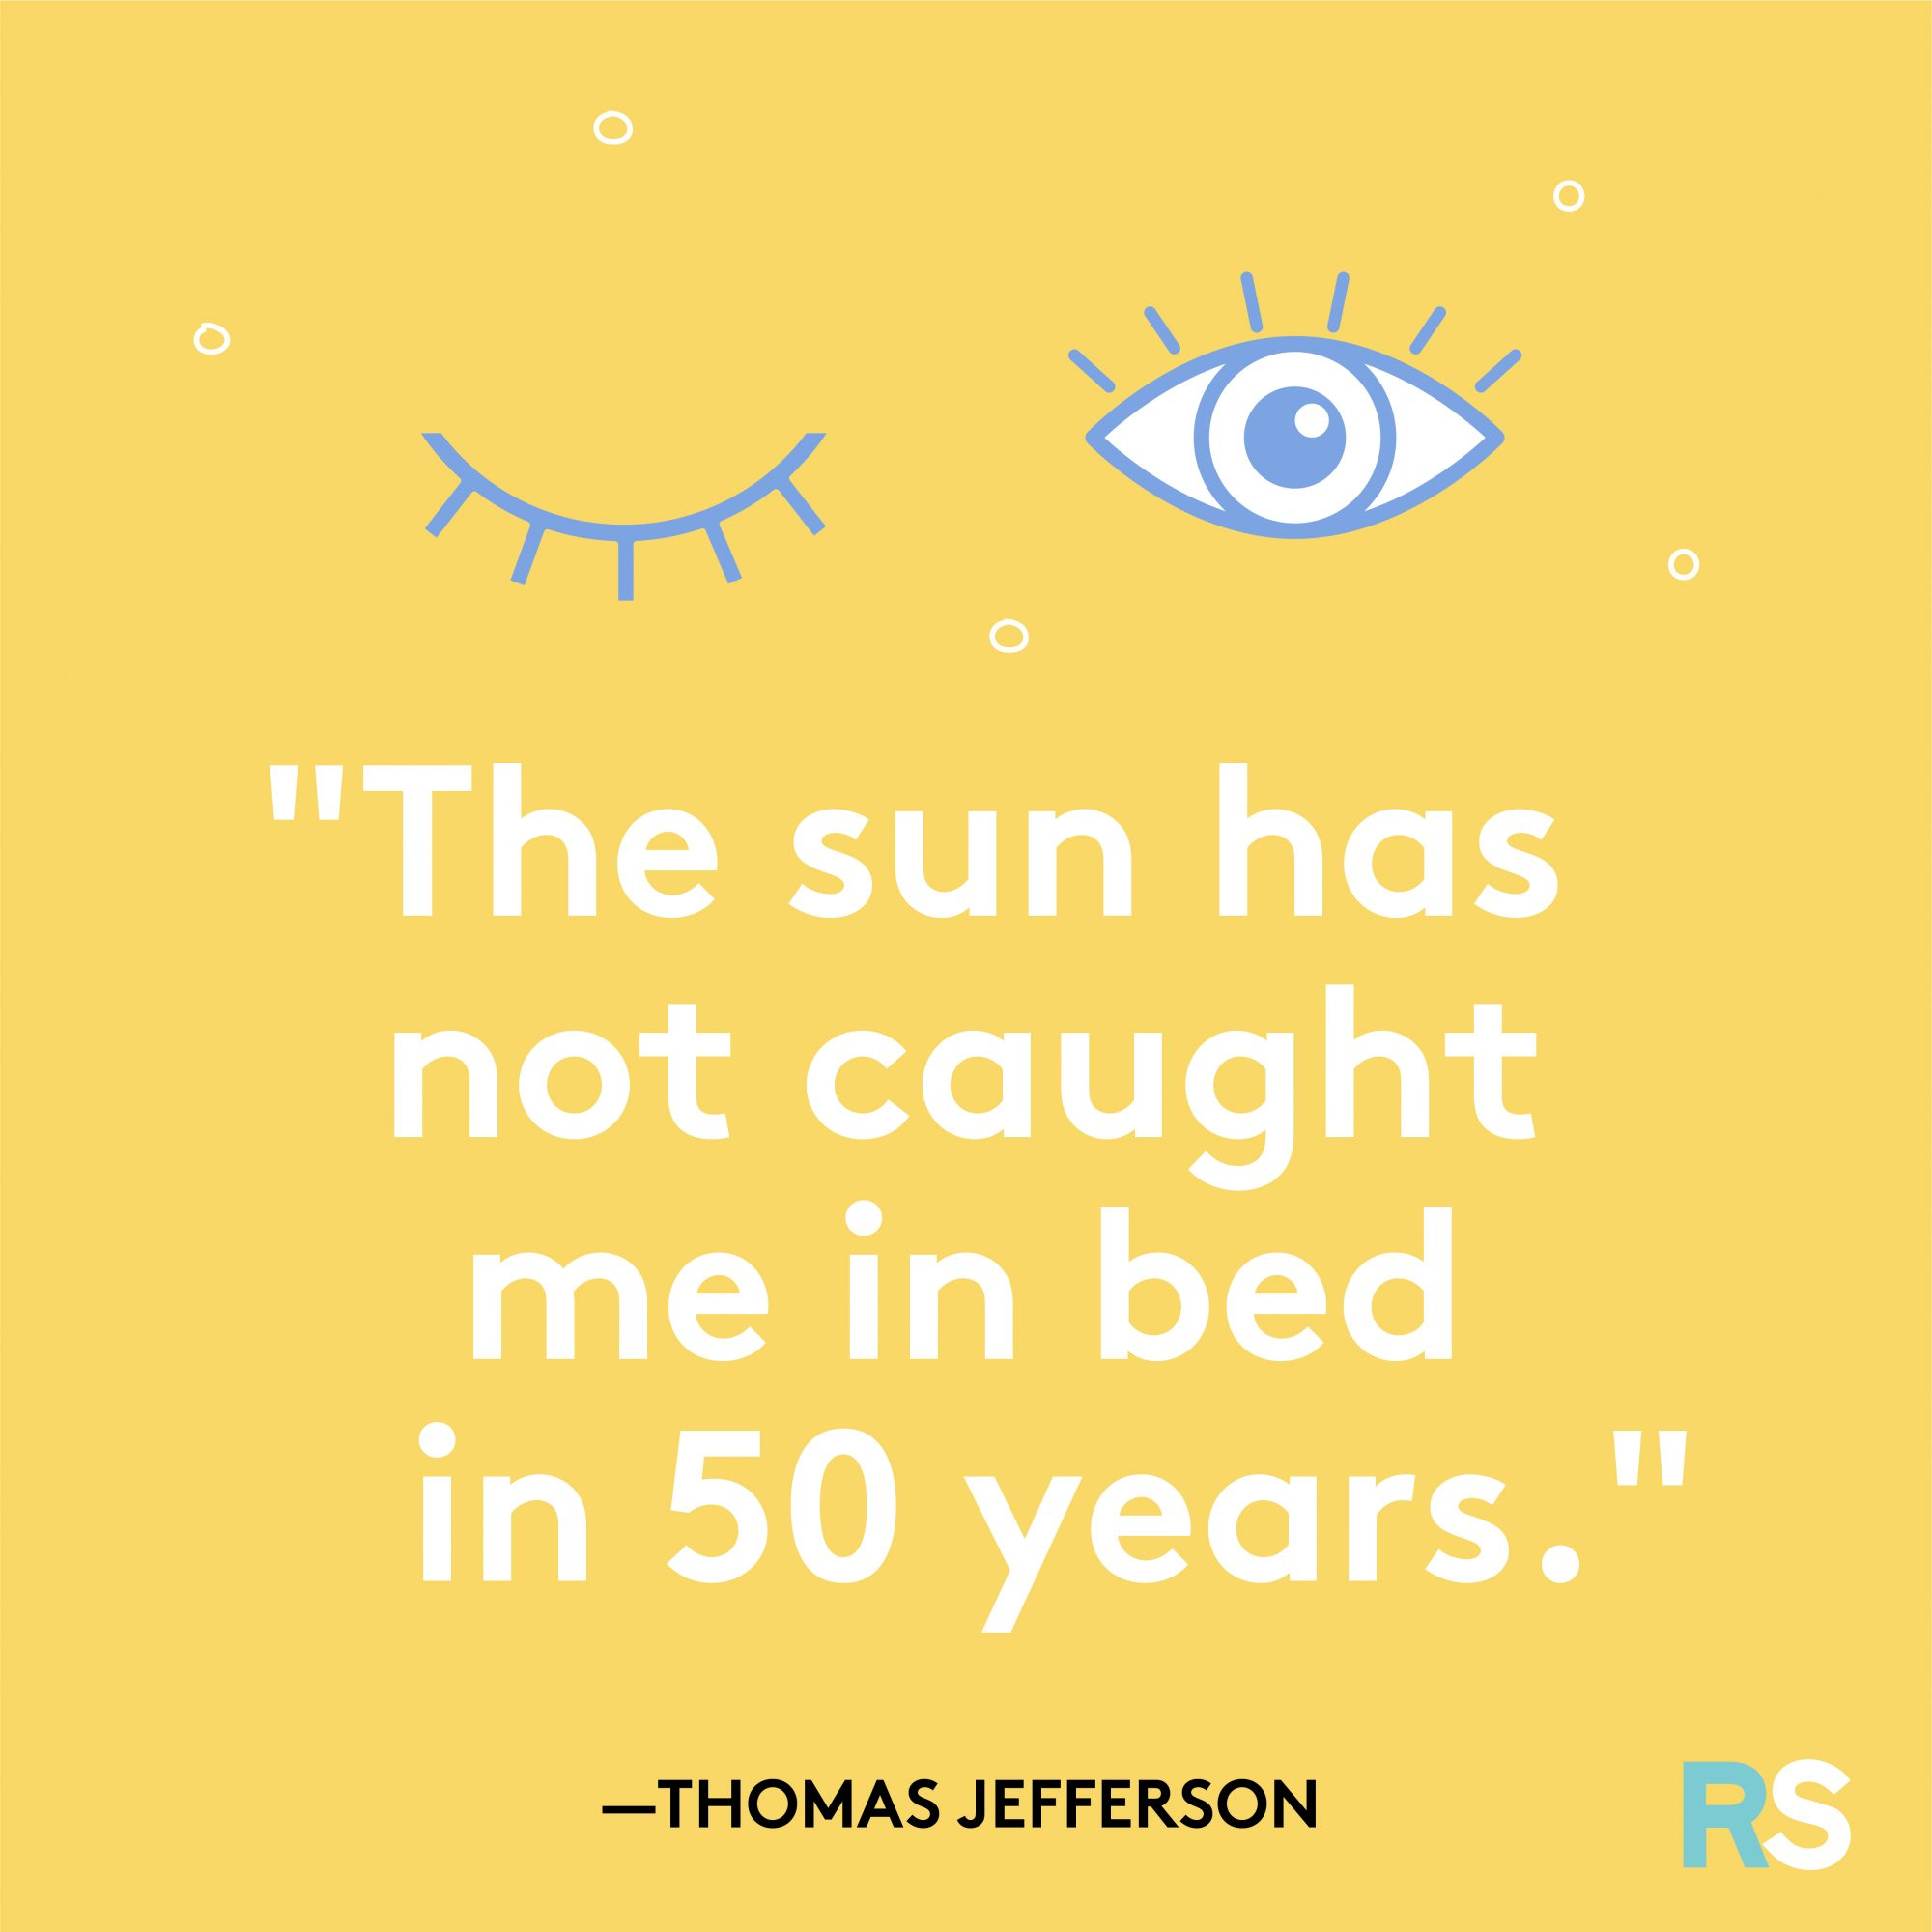 The Sun Has Not Caught Me in Bed Quote by Thomas Jefferson